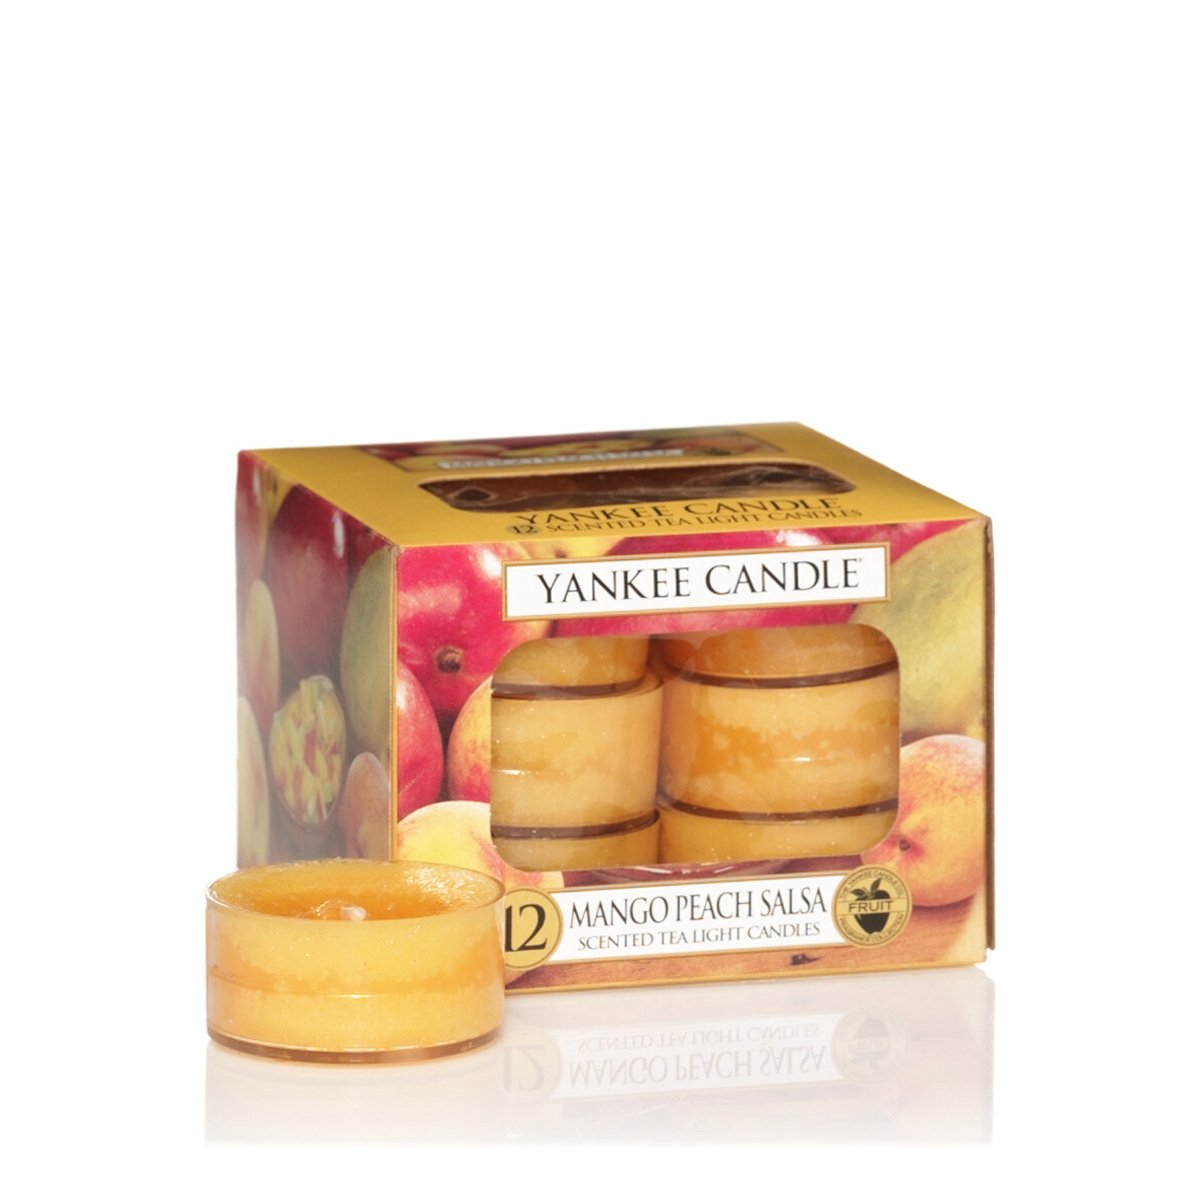 Yankee Candles Tea Lights (12 x Mango Peach Salsa) 1114684E